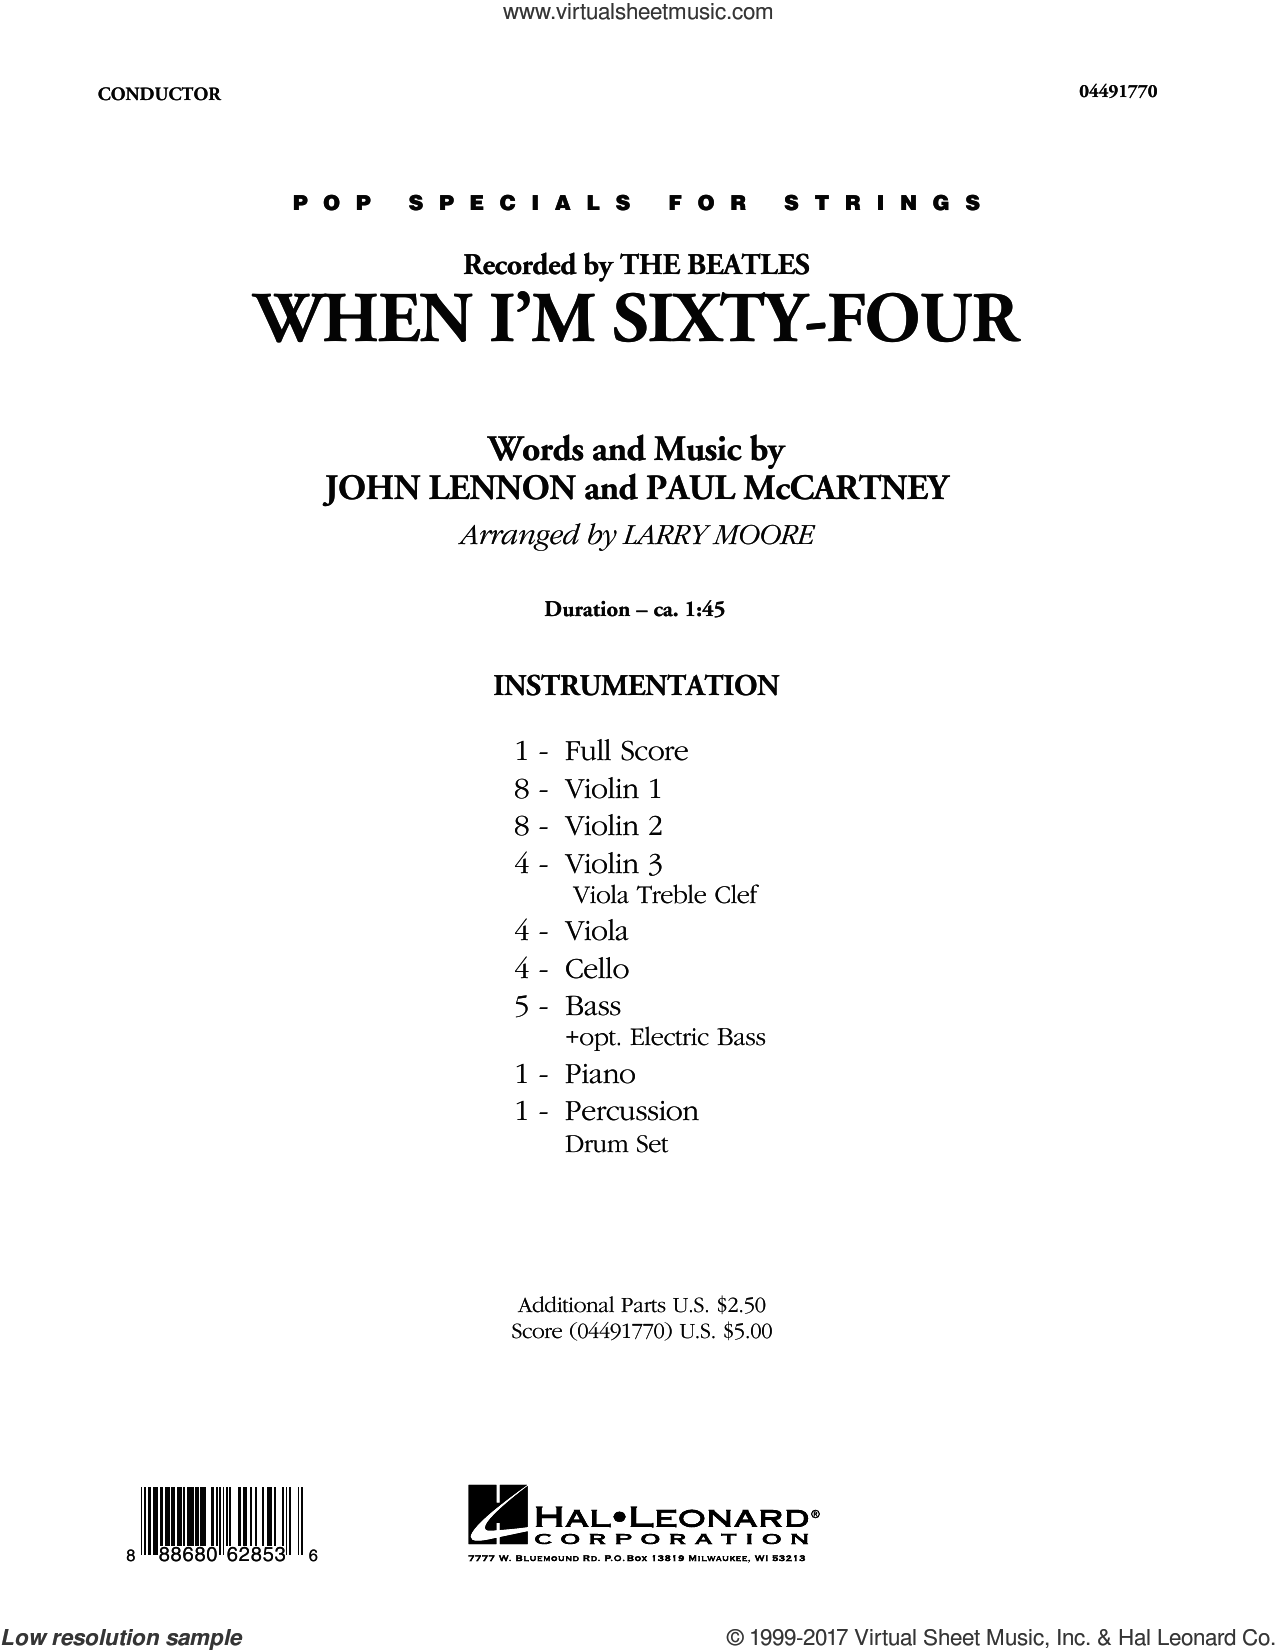 When I'm Sixty-Four (COMPLETE) sheet music for orchestra by Larry Moore, John Lennon, Paul McCartney and The Beatles, intermediate